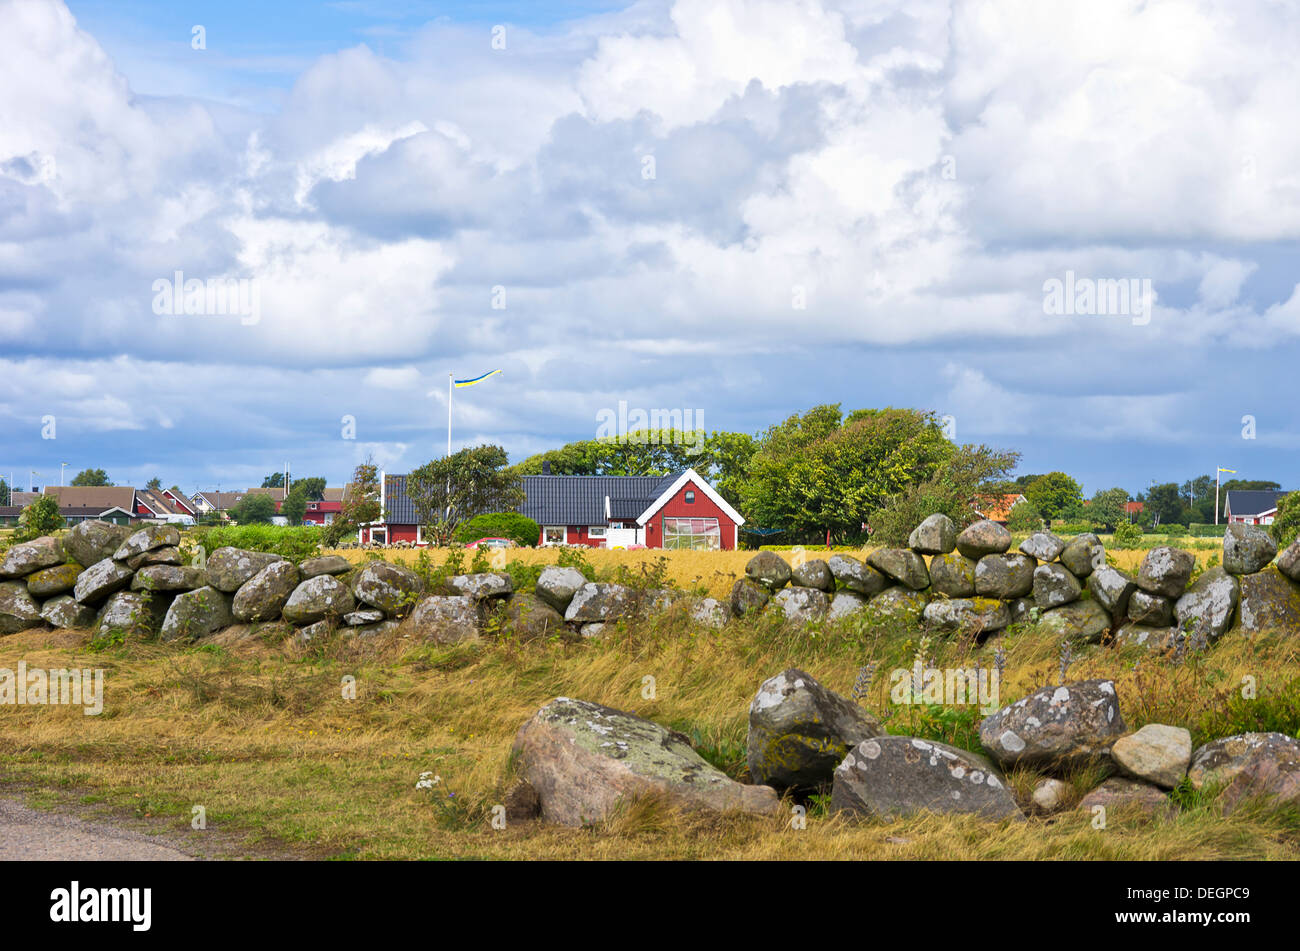 Typical Swedish Rural Environment And Countryside - Stock Image